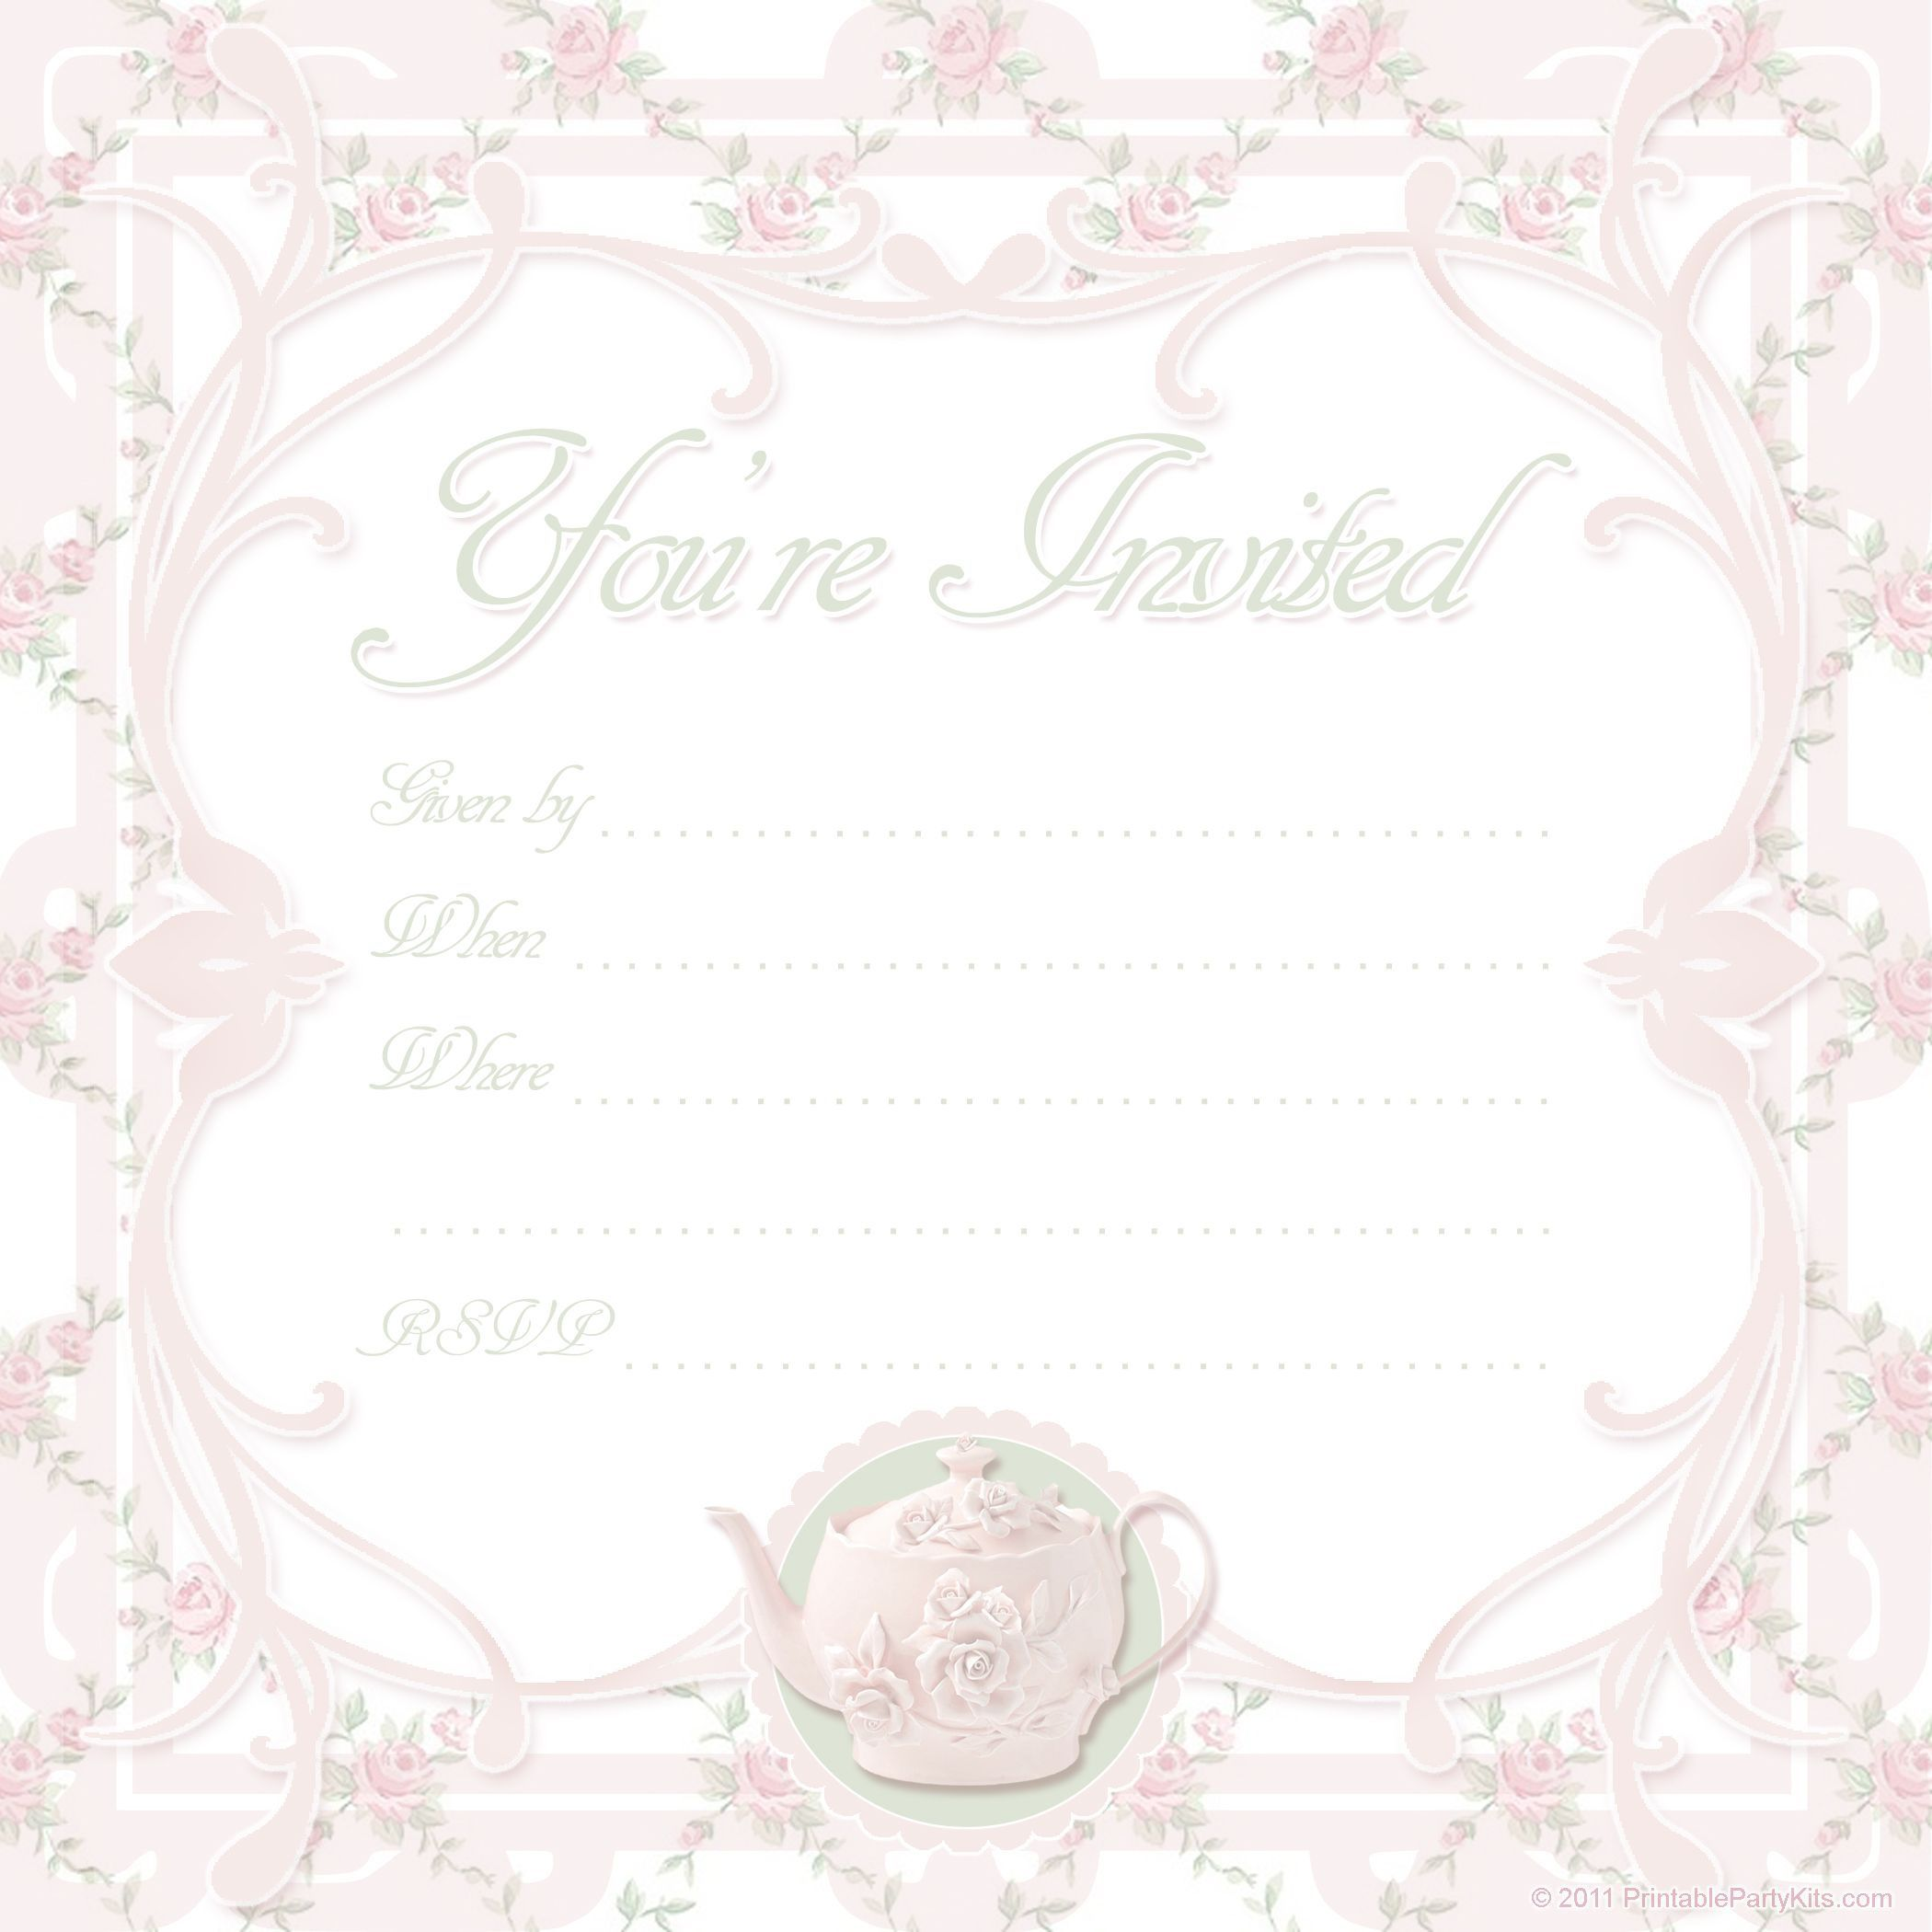 000 Awesome Tea Party Invitation Template High Def  Wording Vintage Free SampleFull